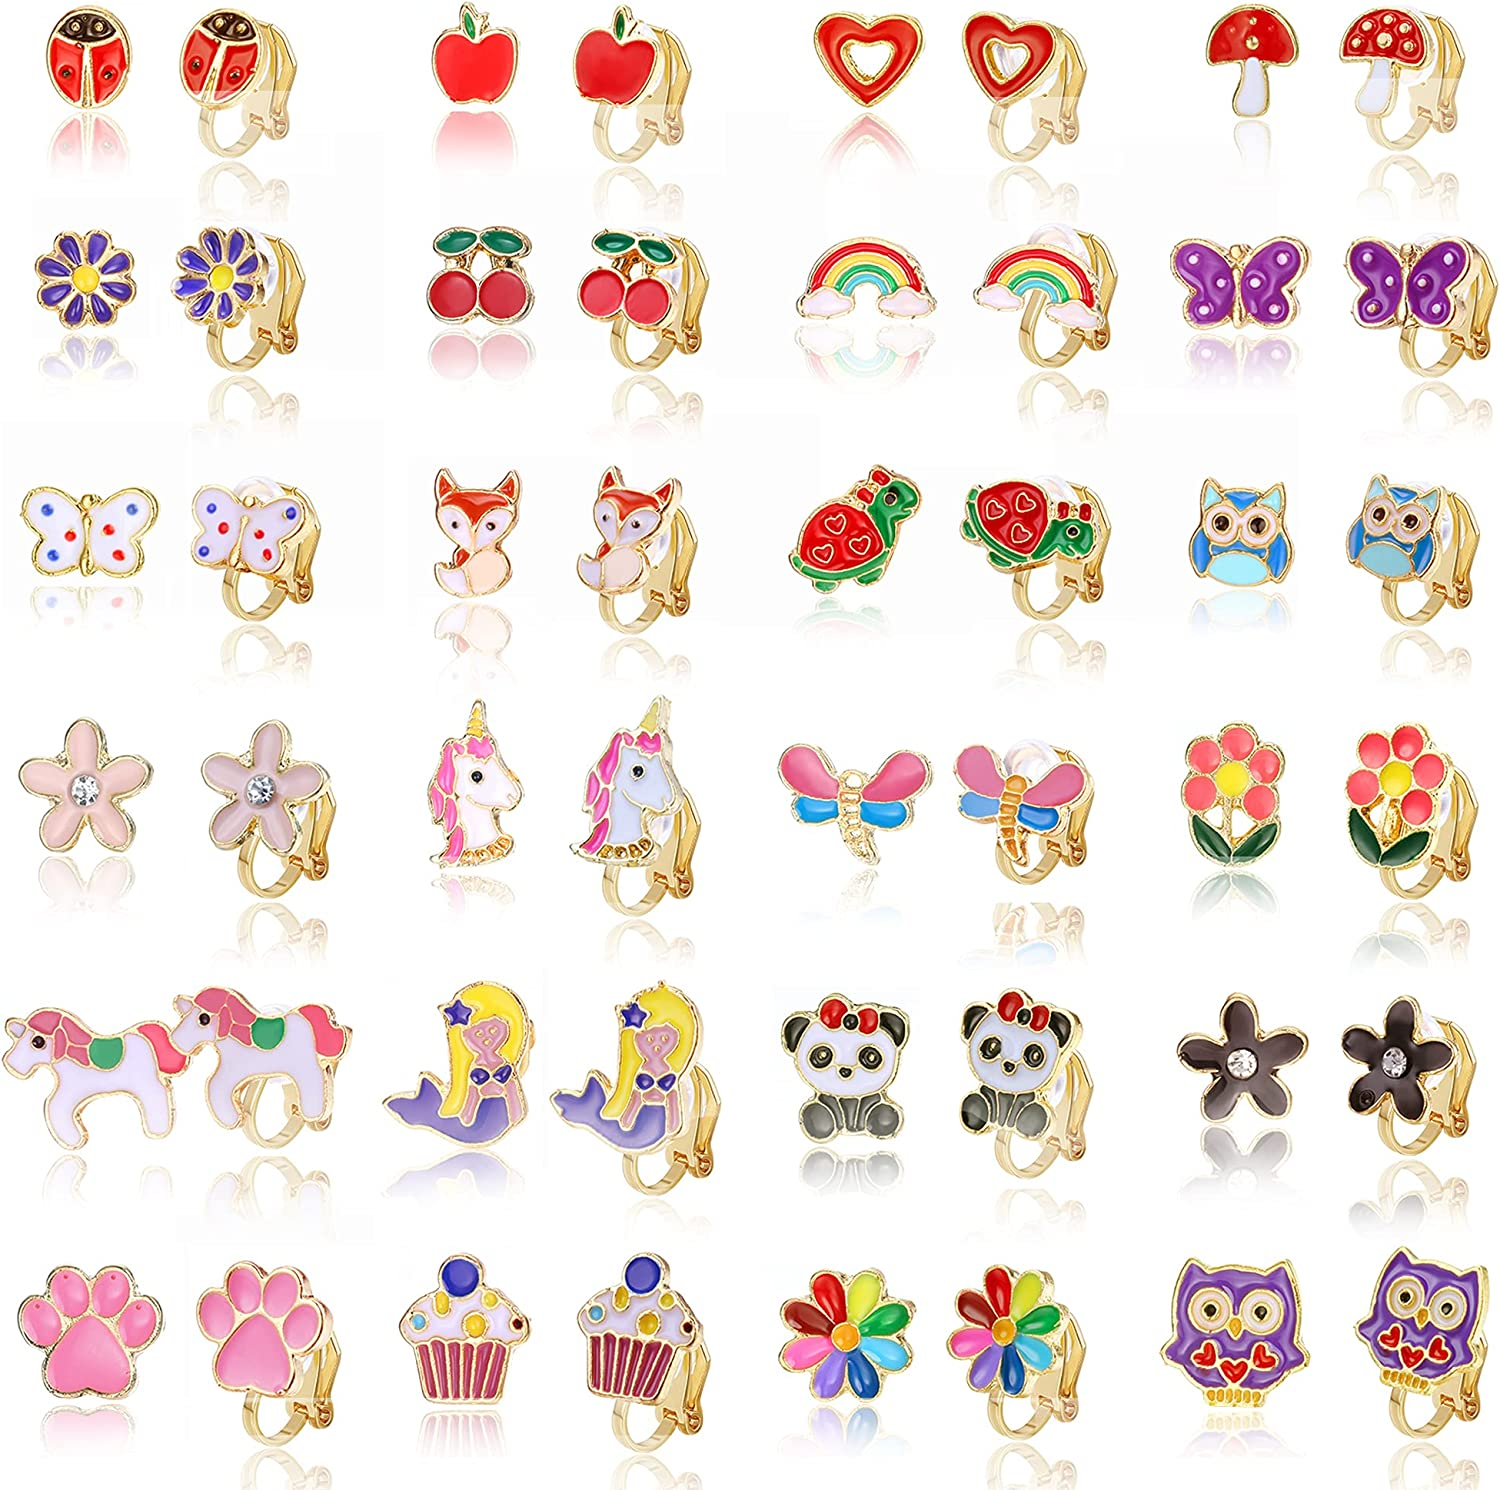 Subiceto 24 Pairs Clip on Earrings for Non Pierced Ears Cute Assorted Animal Unicorn Flower Earrings Set for Women Mixed Color Painless Non-Piercing Earrings Pack